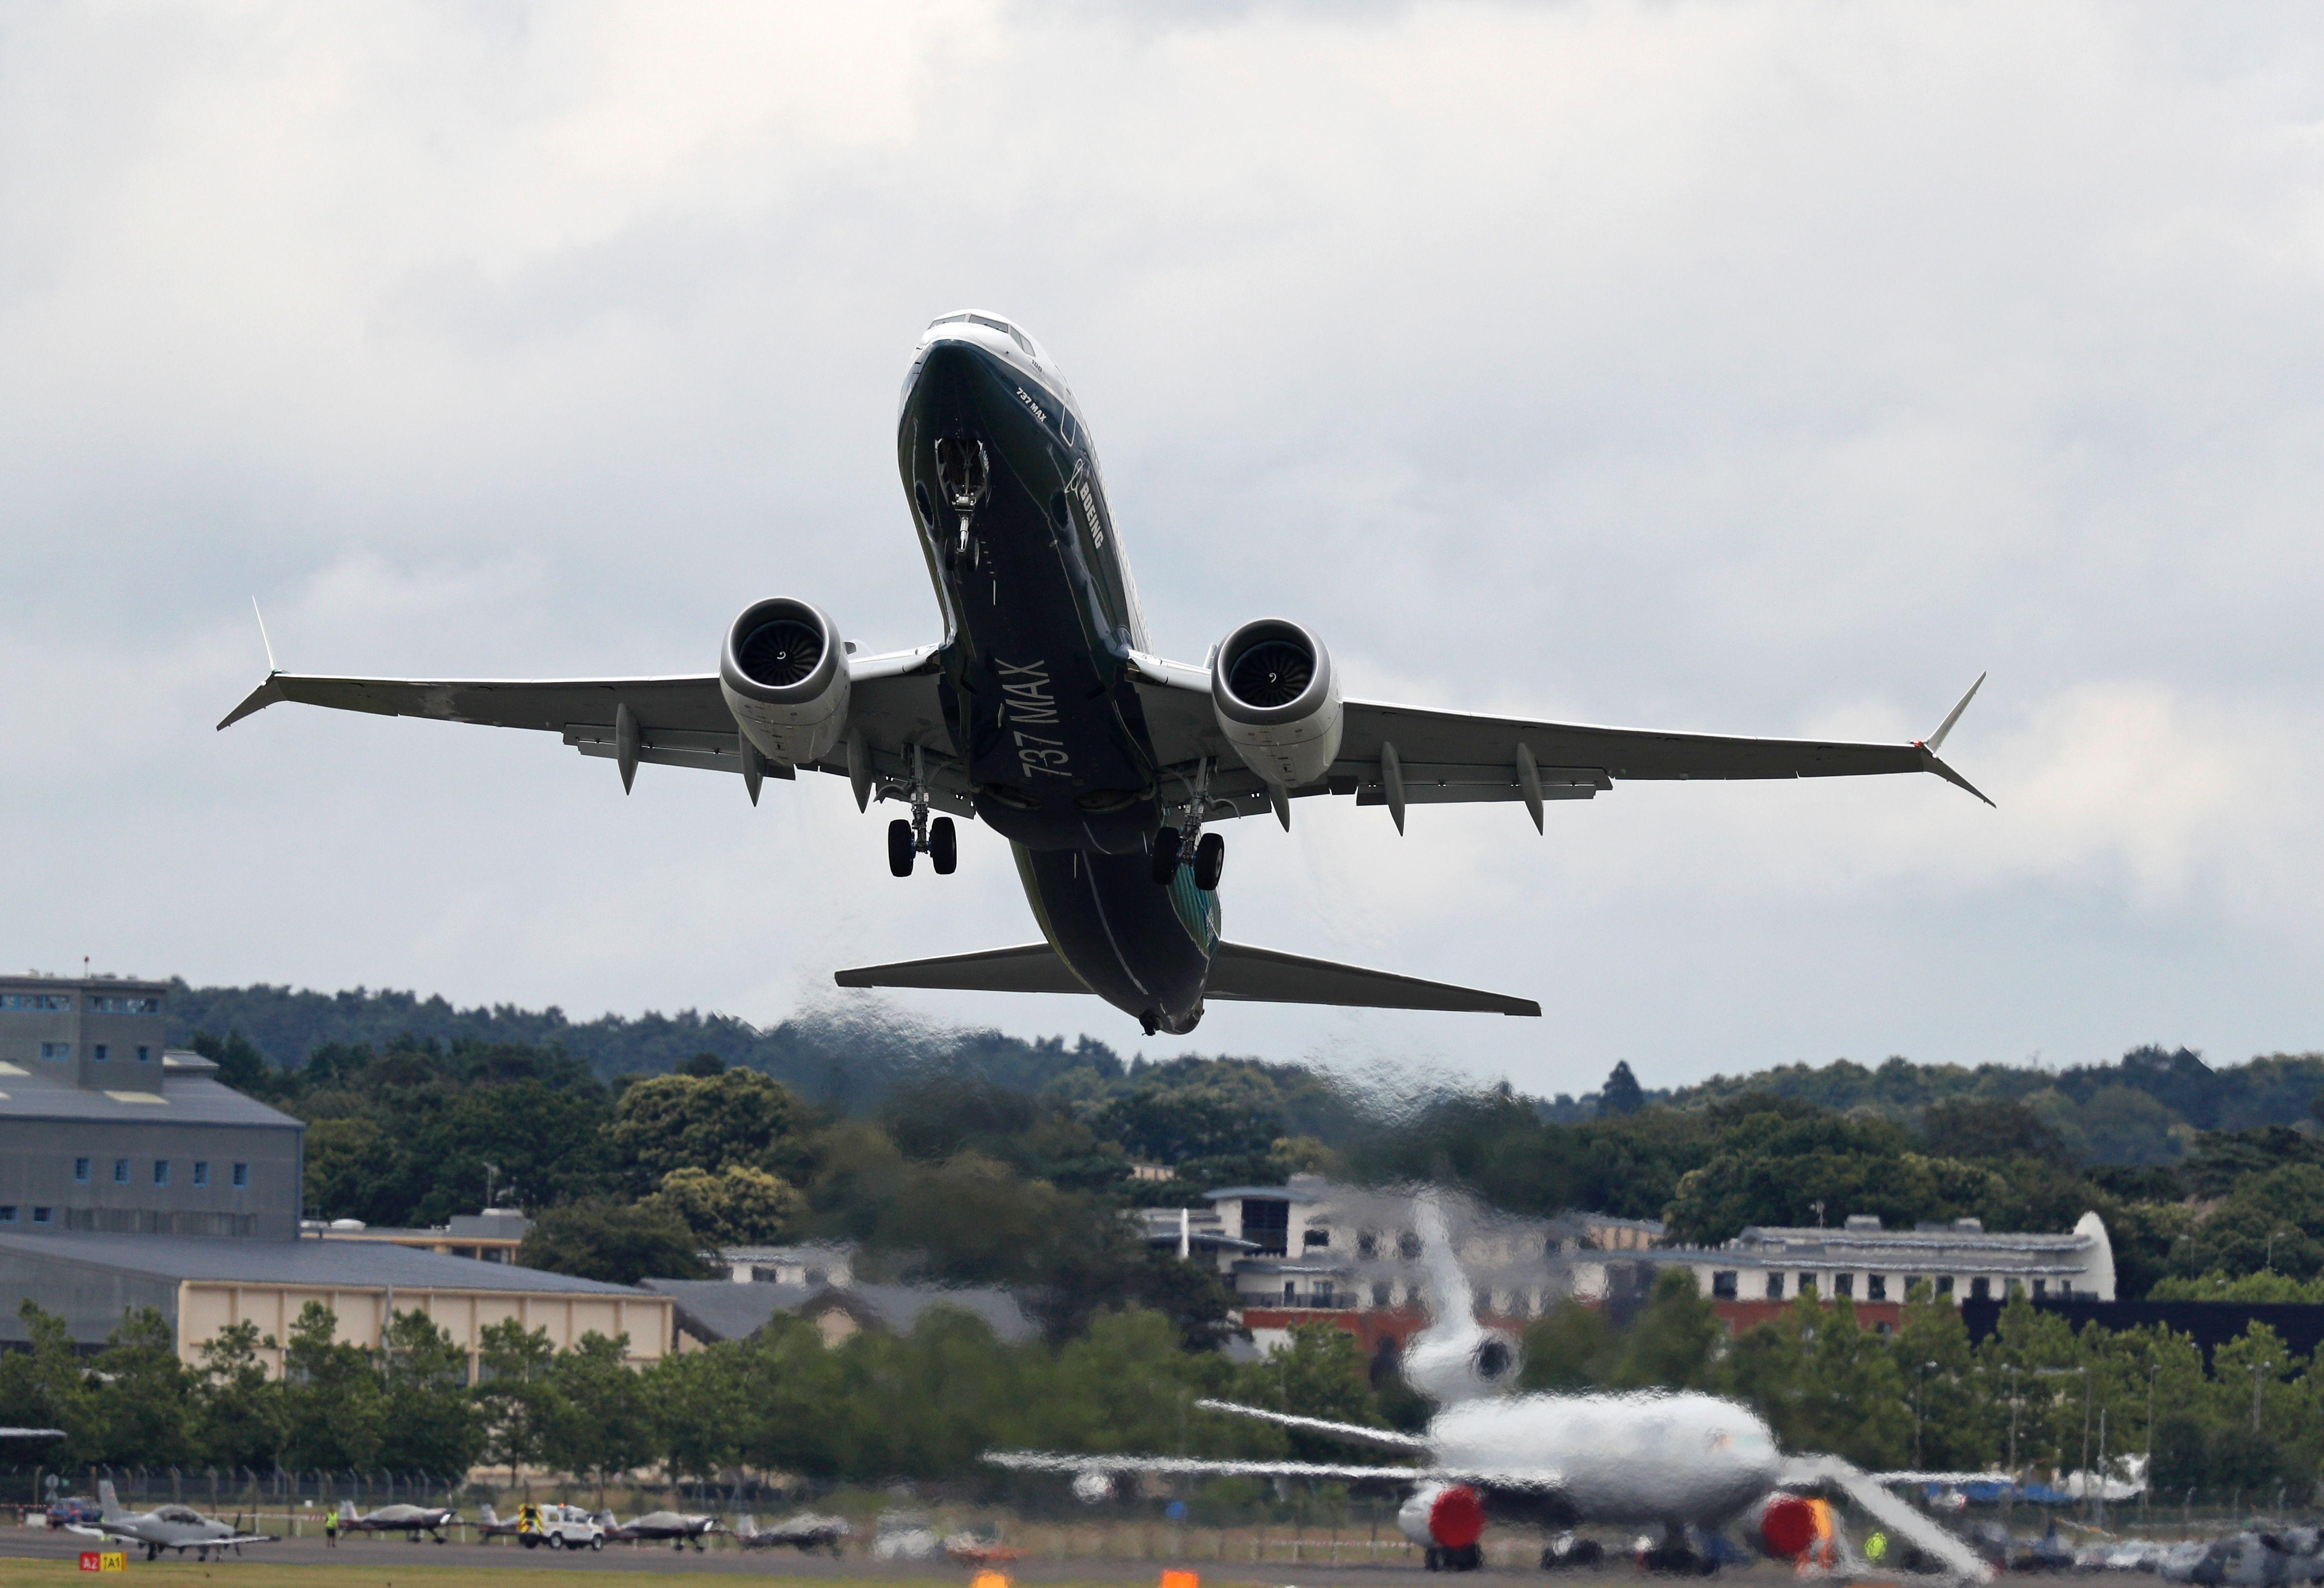 FAA Urges Airlines to Follow Boeing's Advice After 189 People Killed in 737 MAX Crash